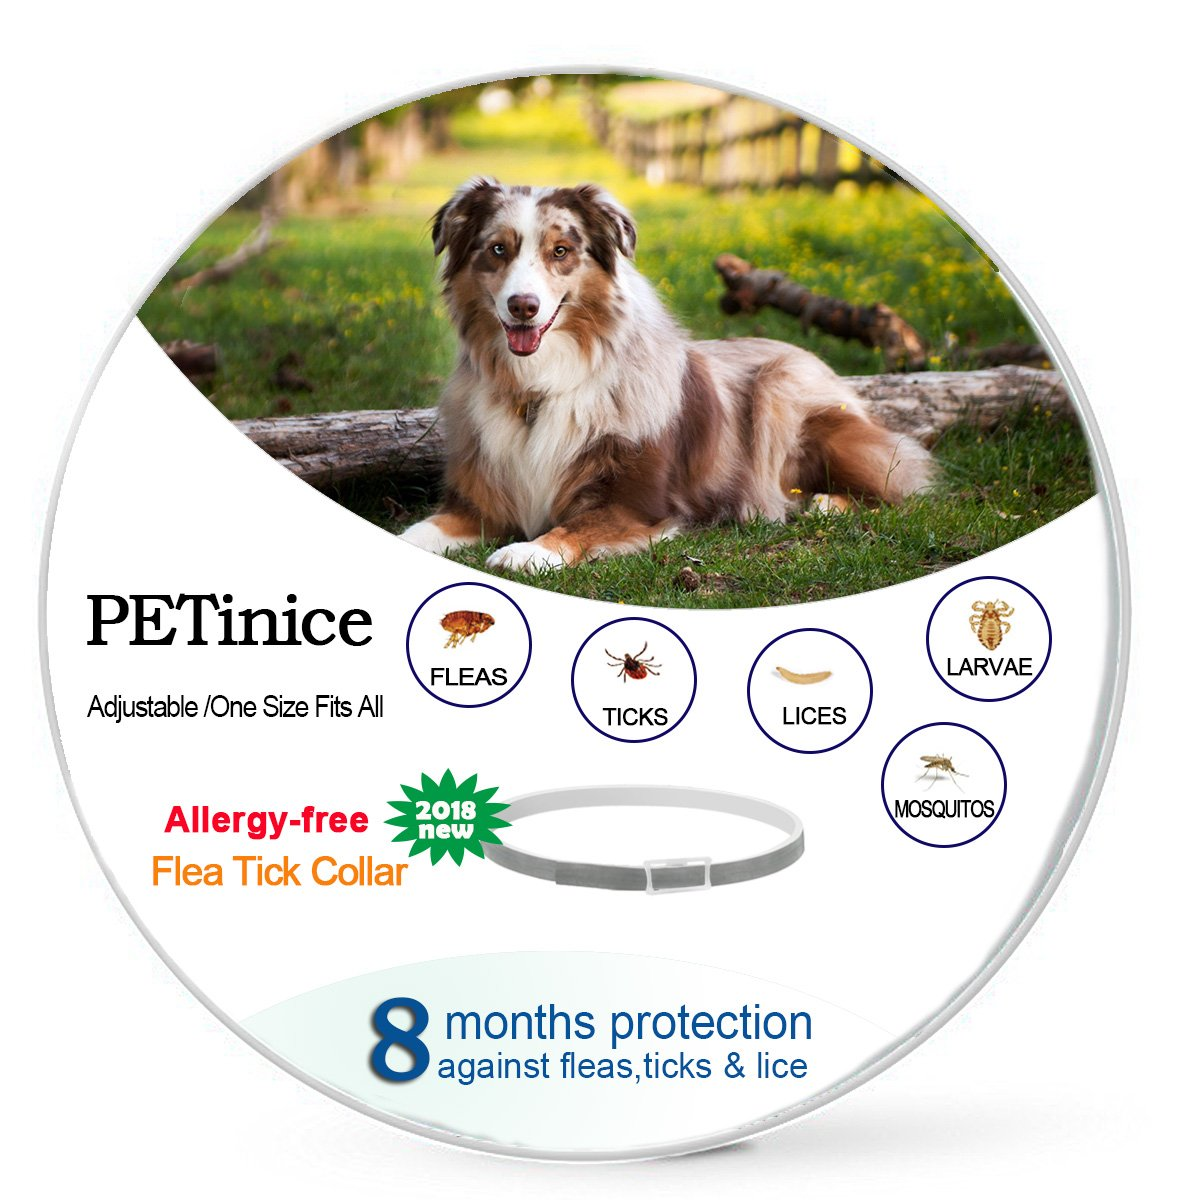 Flea and Tick Prevention for Dogs,Dog Flea and Tick Control-Prevents,Repels Fleas,Ticks & Lice Waterproof and Adjustable Flea Collar for Dogs,25 Inches,Gray(New Version)